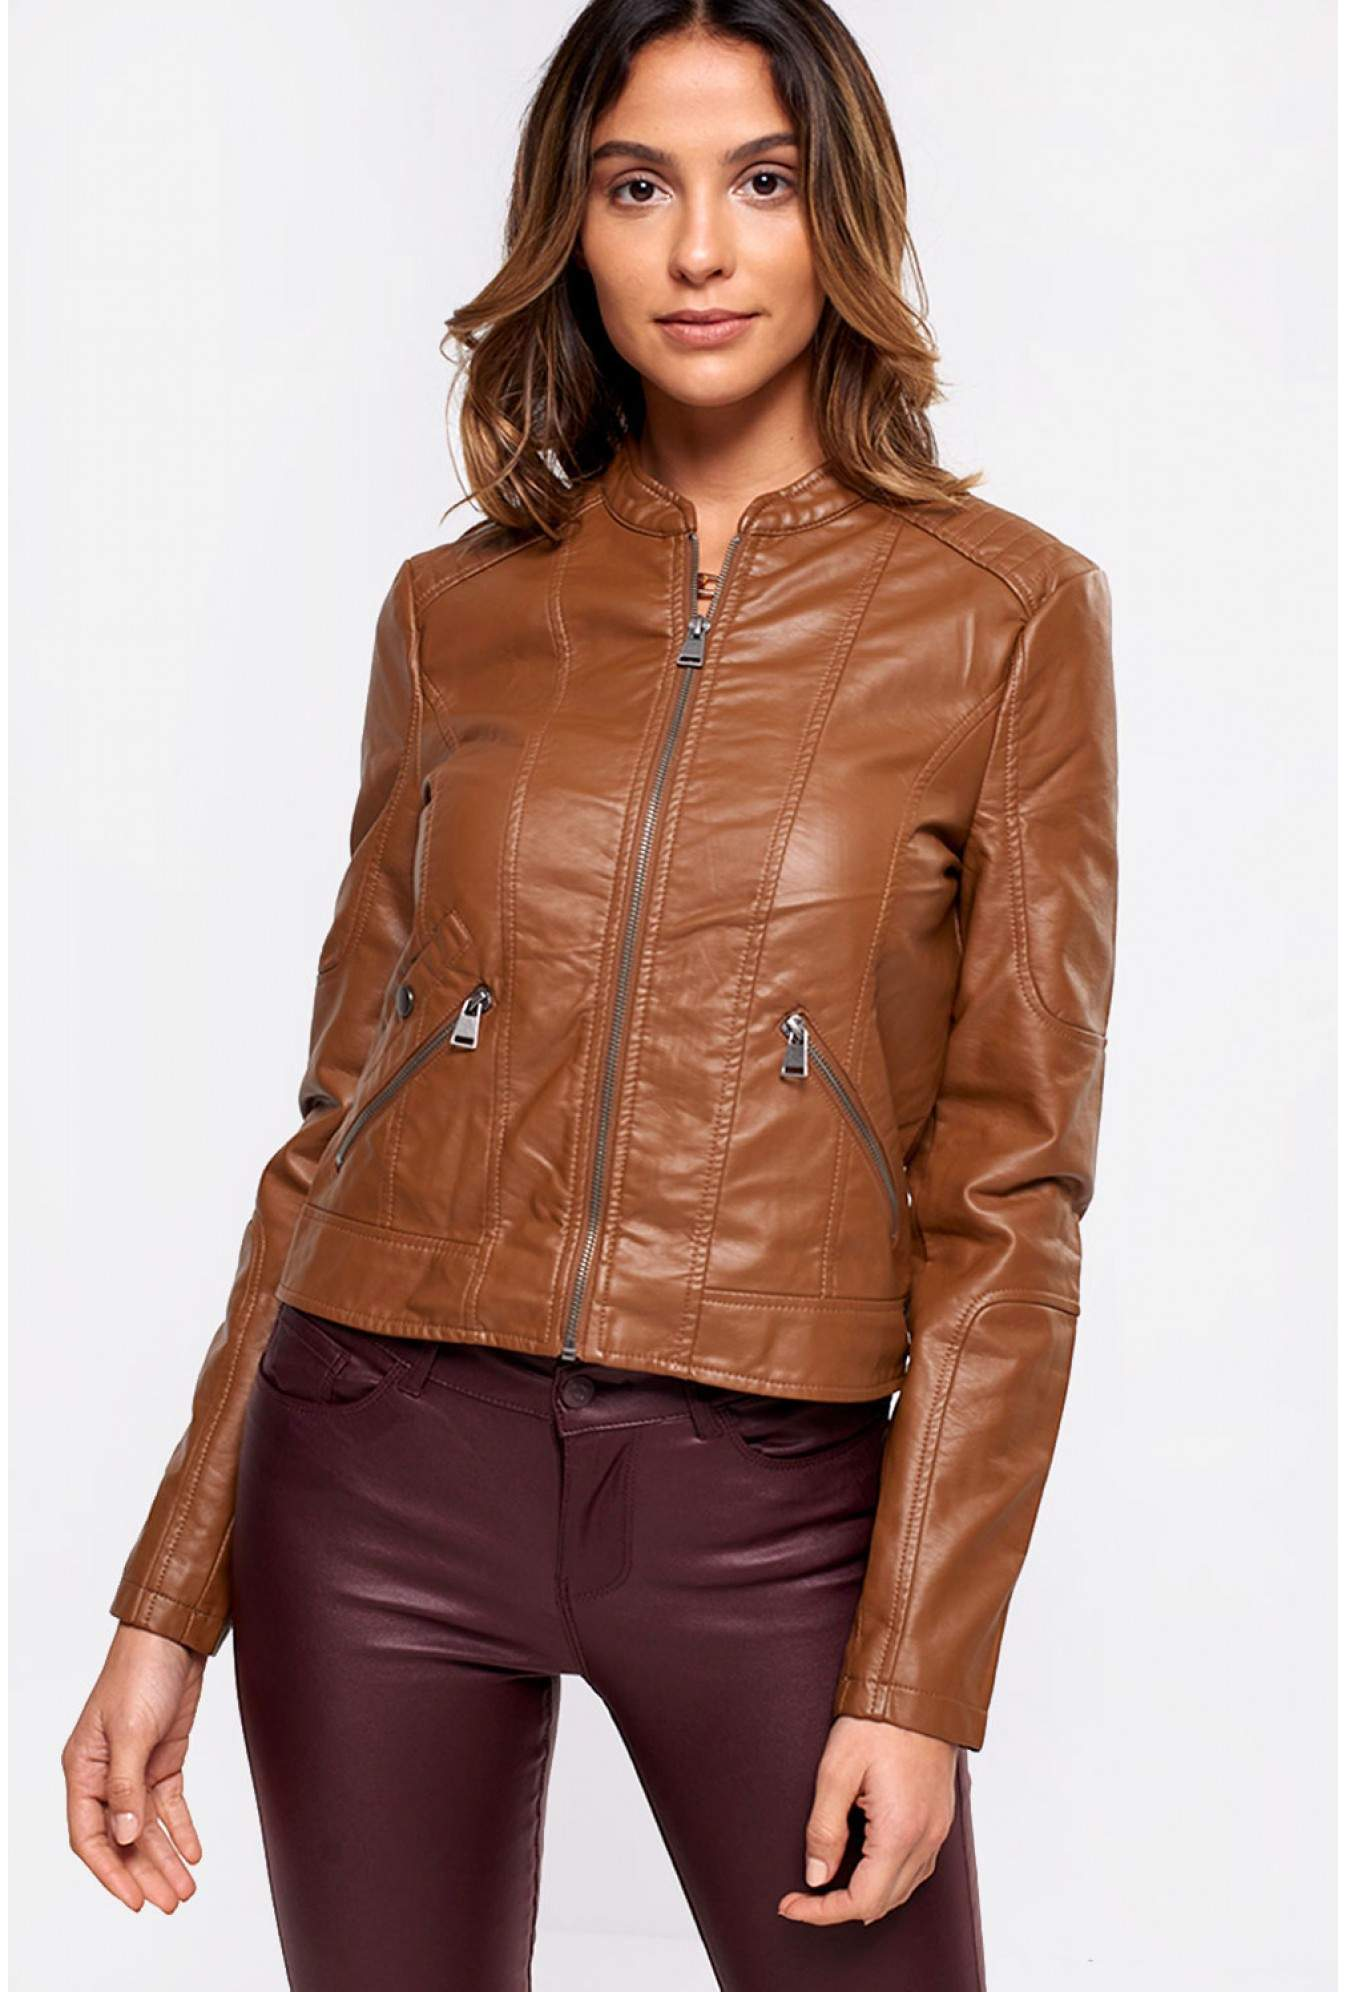 060f2cd92 Europe Faux Leather Jacket in Tan